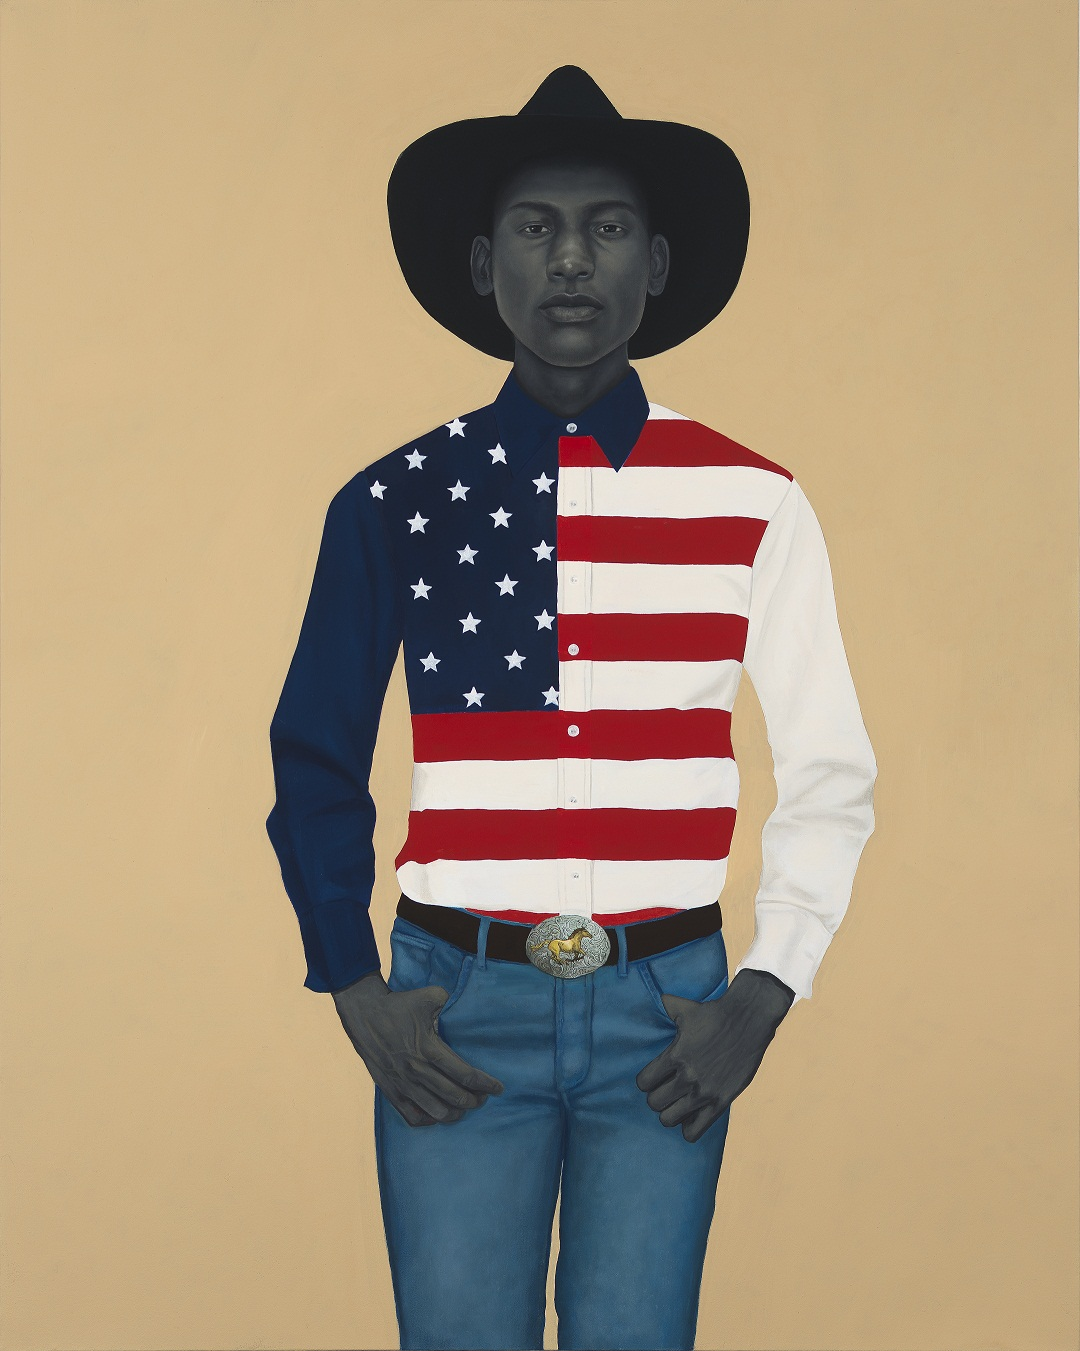 Amy Sherald, What's precious inside of him does not care to be known by the mind in ways that diminish its presence (All American), 2017. Oil on canvas, 54 x 43 inches. Private collection. Courtesy the artist and Monique Meloche Gallery, Chicago